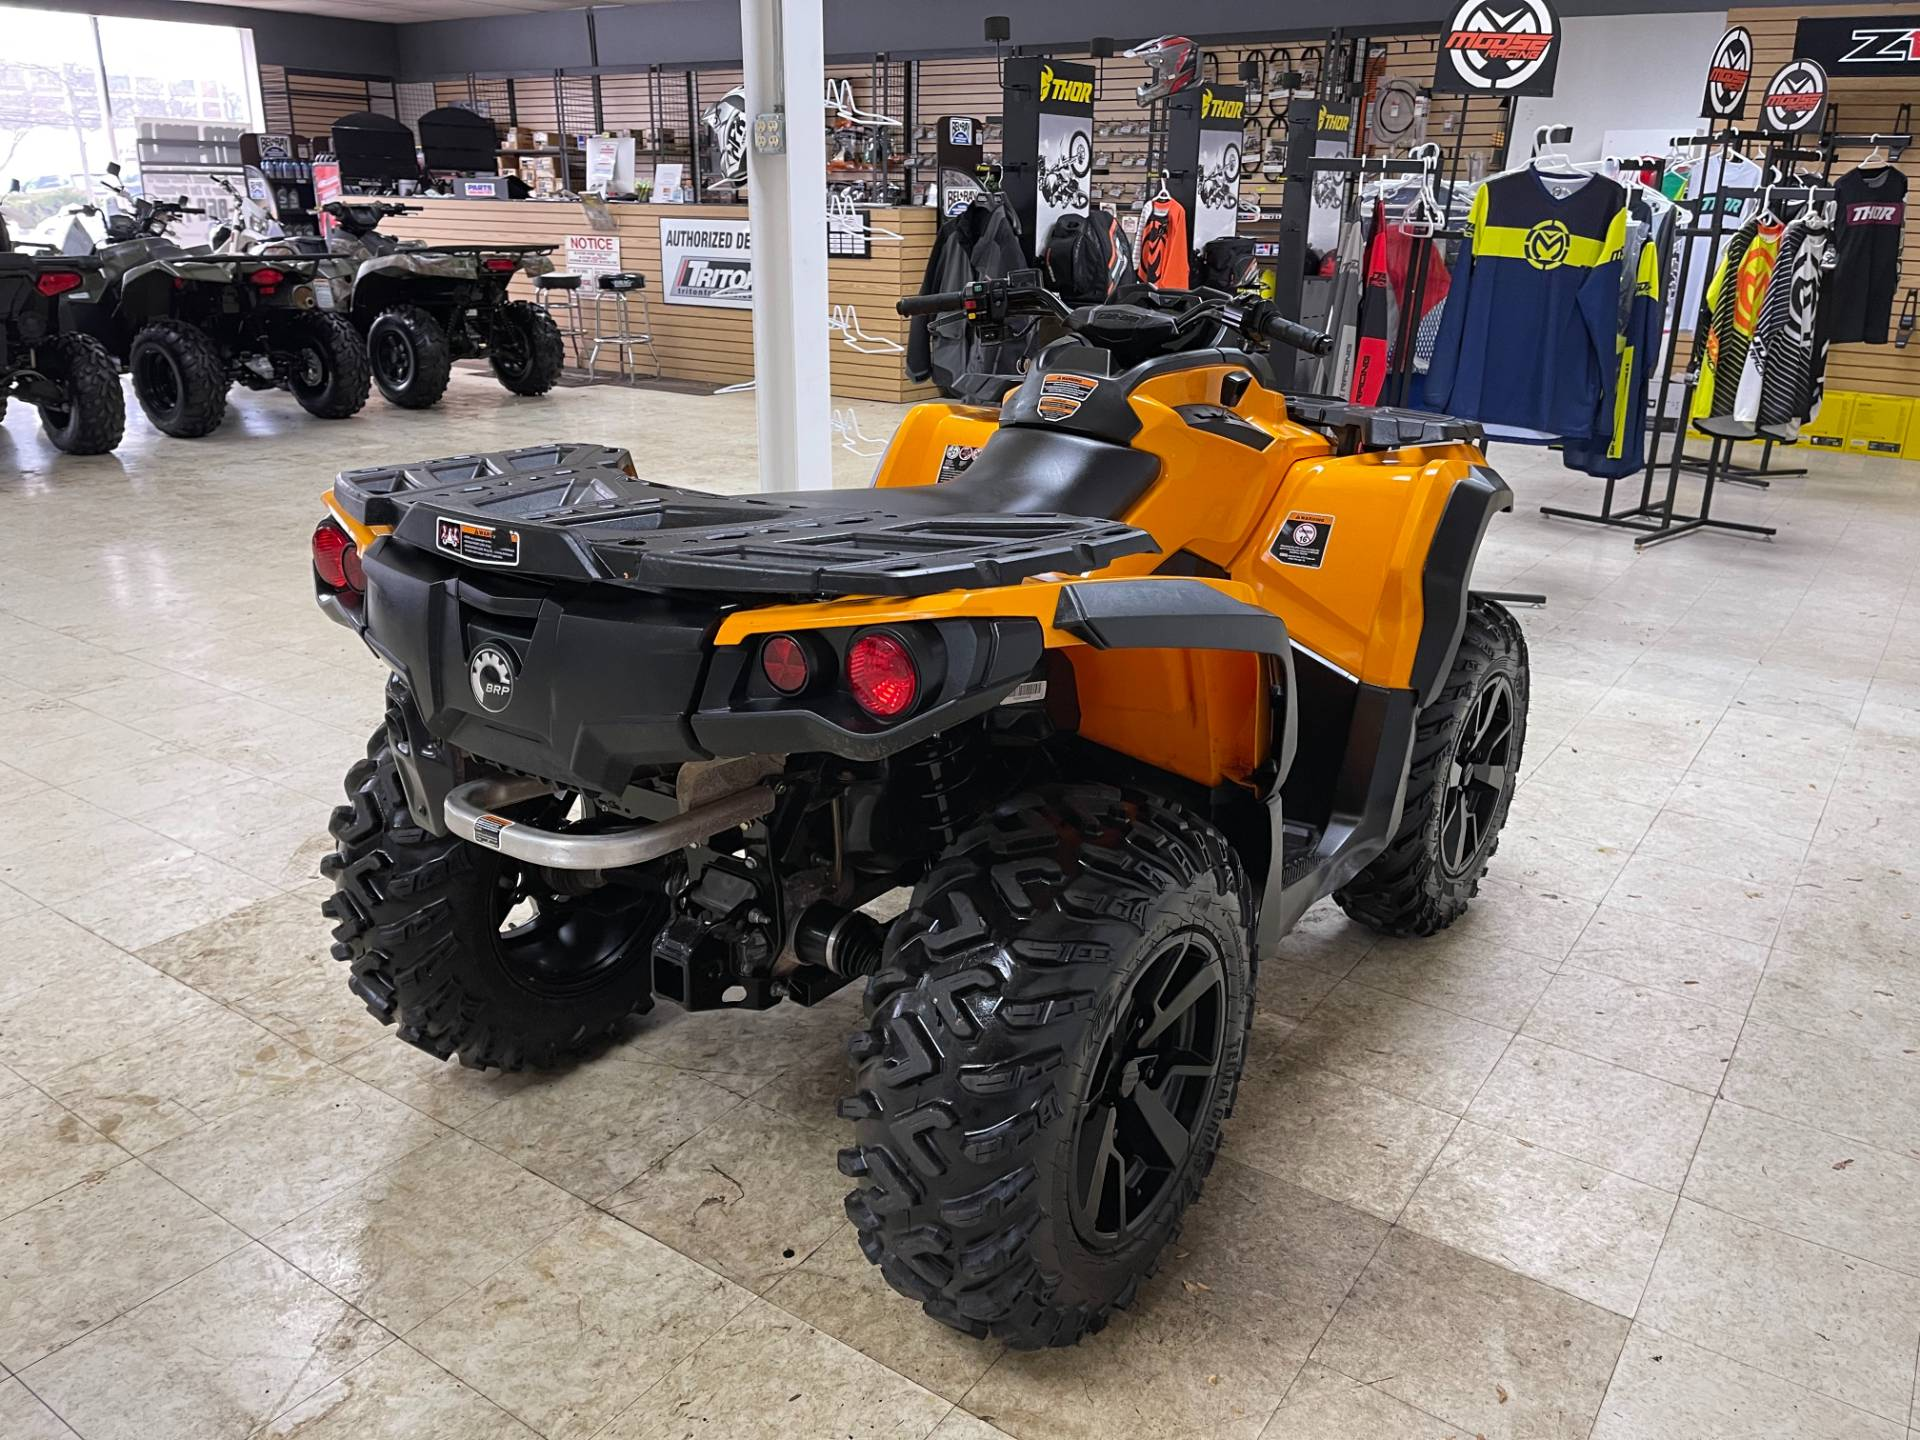 2019 Can-Am Outlander DPS 850 in Herkimer, New York - Photo 11